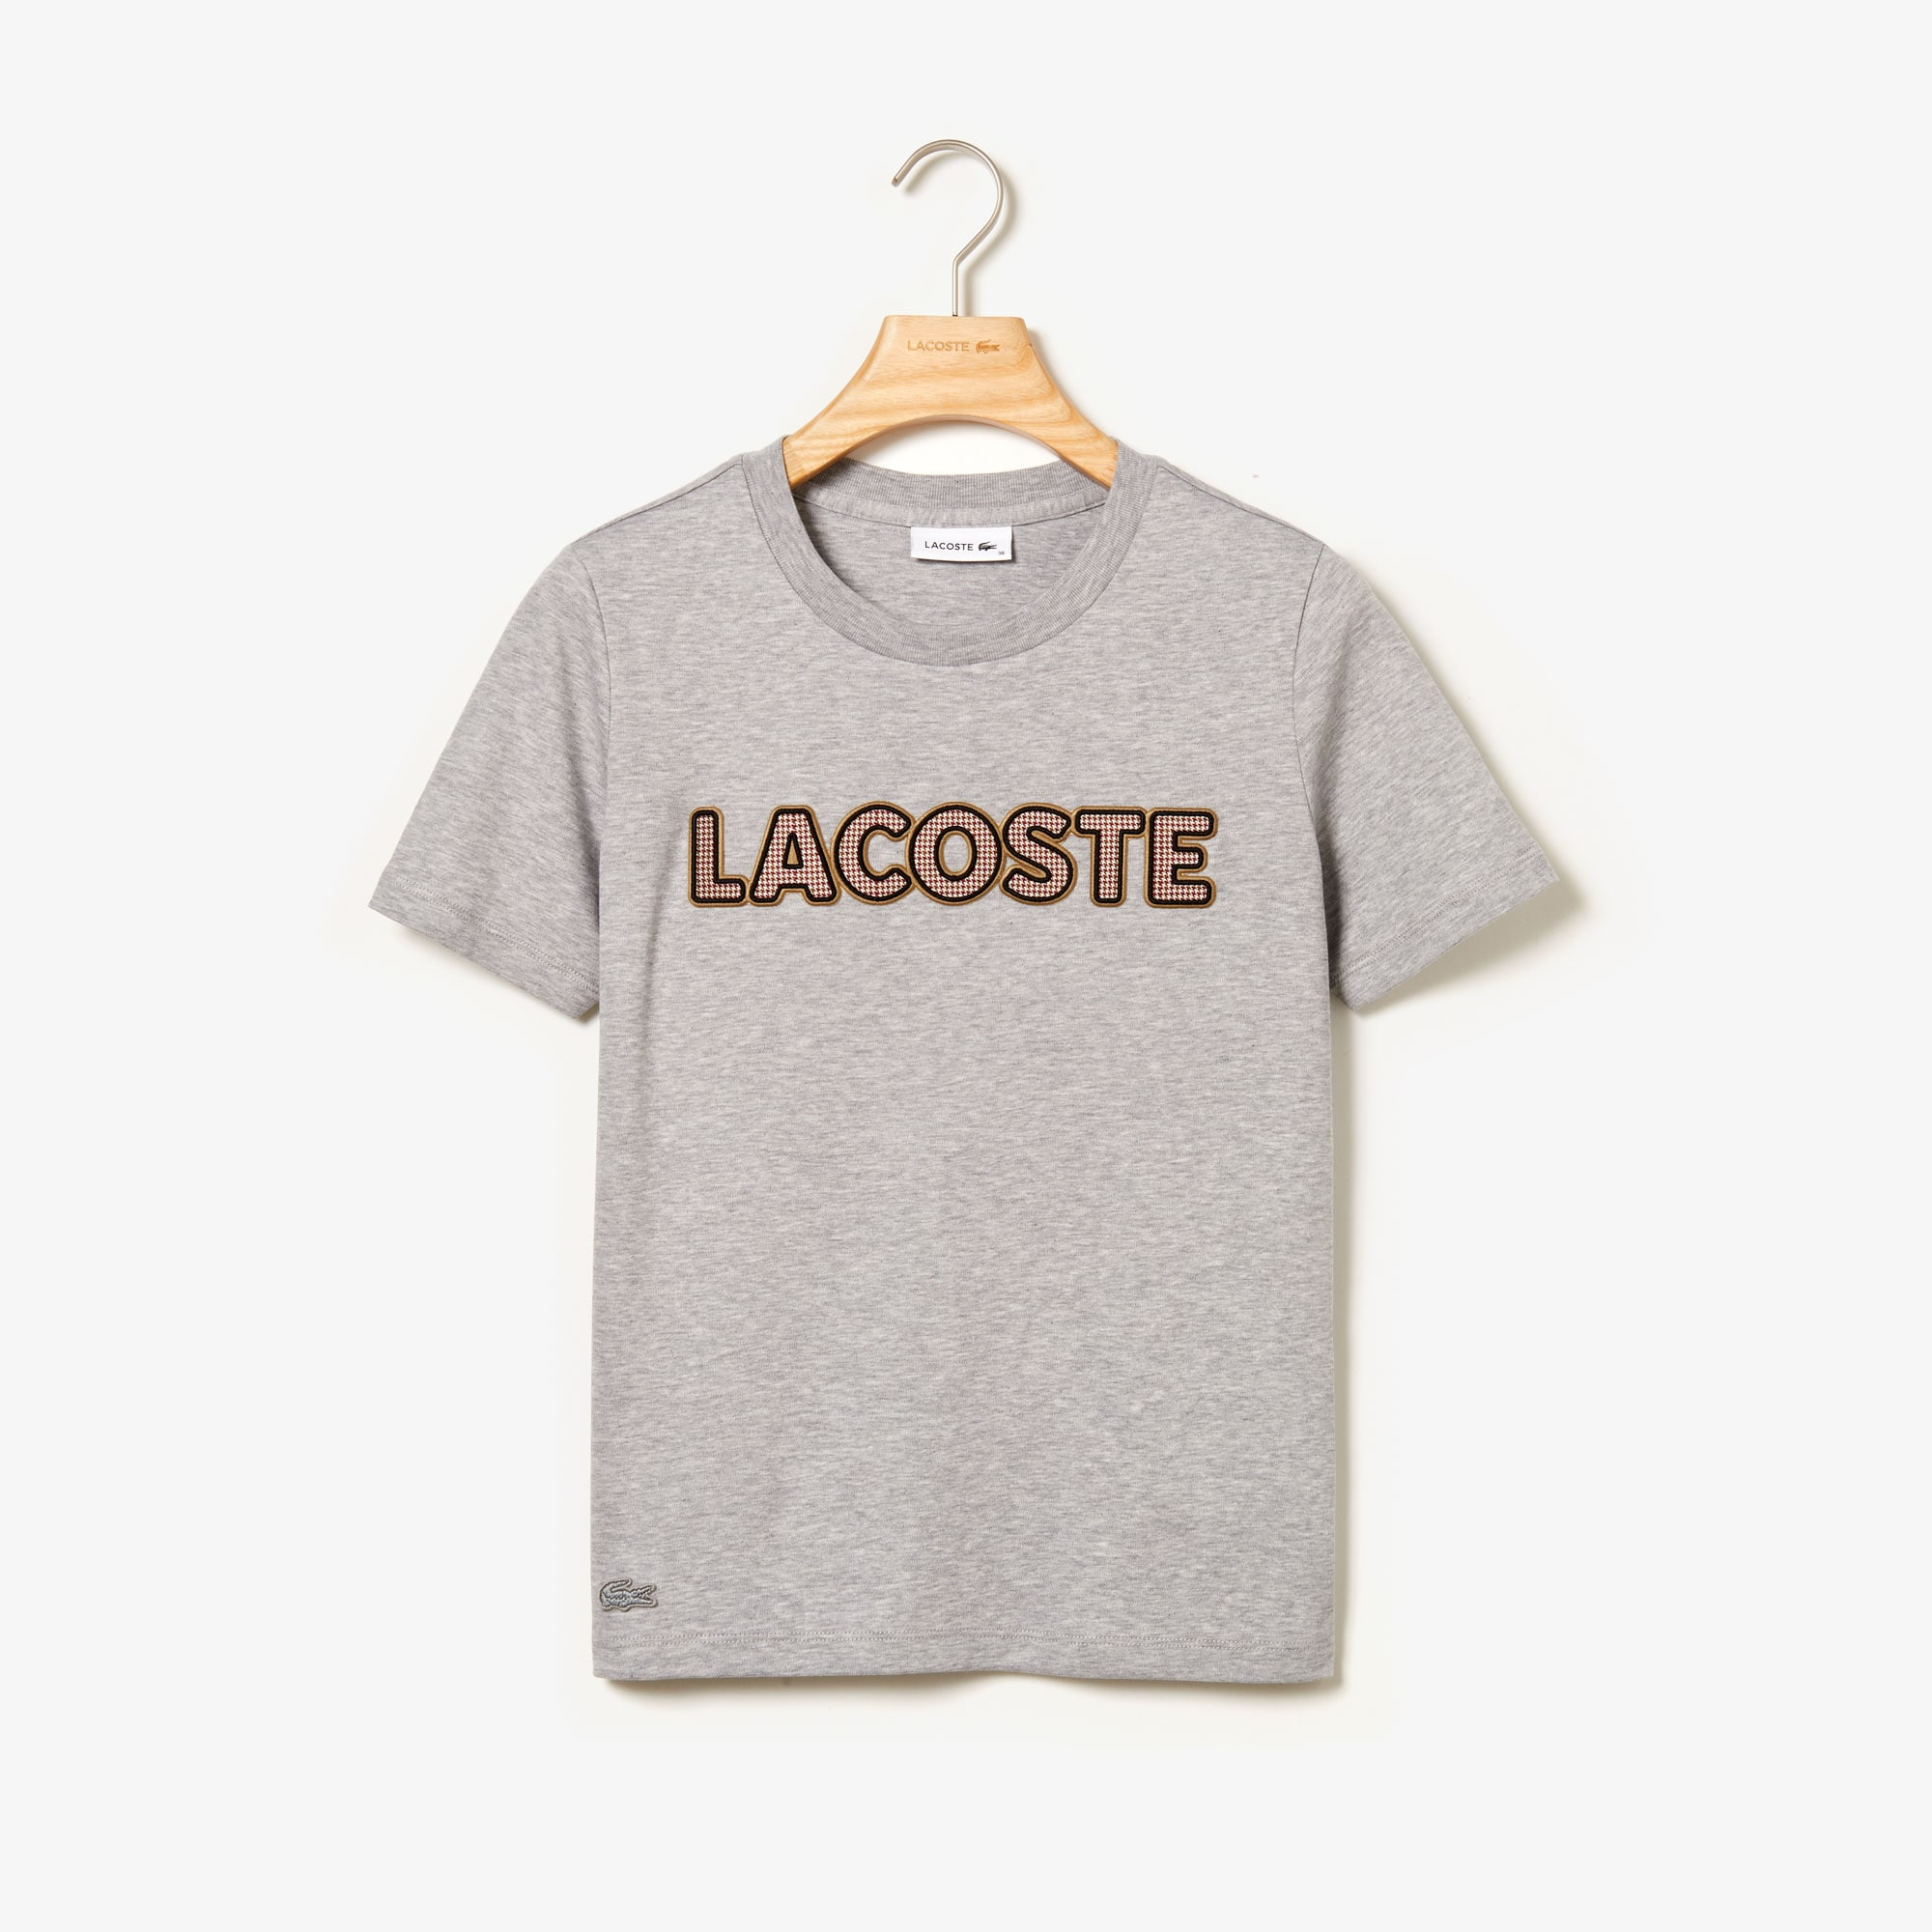 Women's Crew Neck Check Lacoste Badge Lightweight Cotton T-shirt